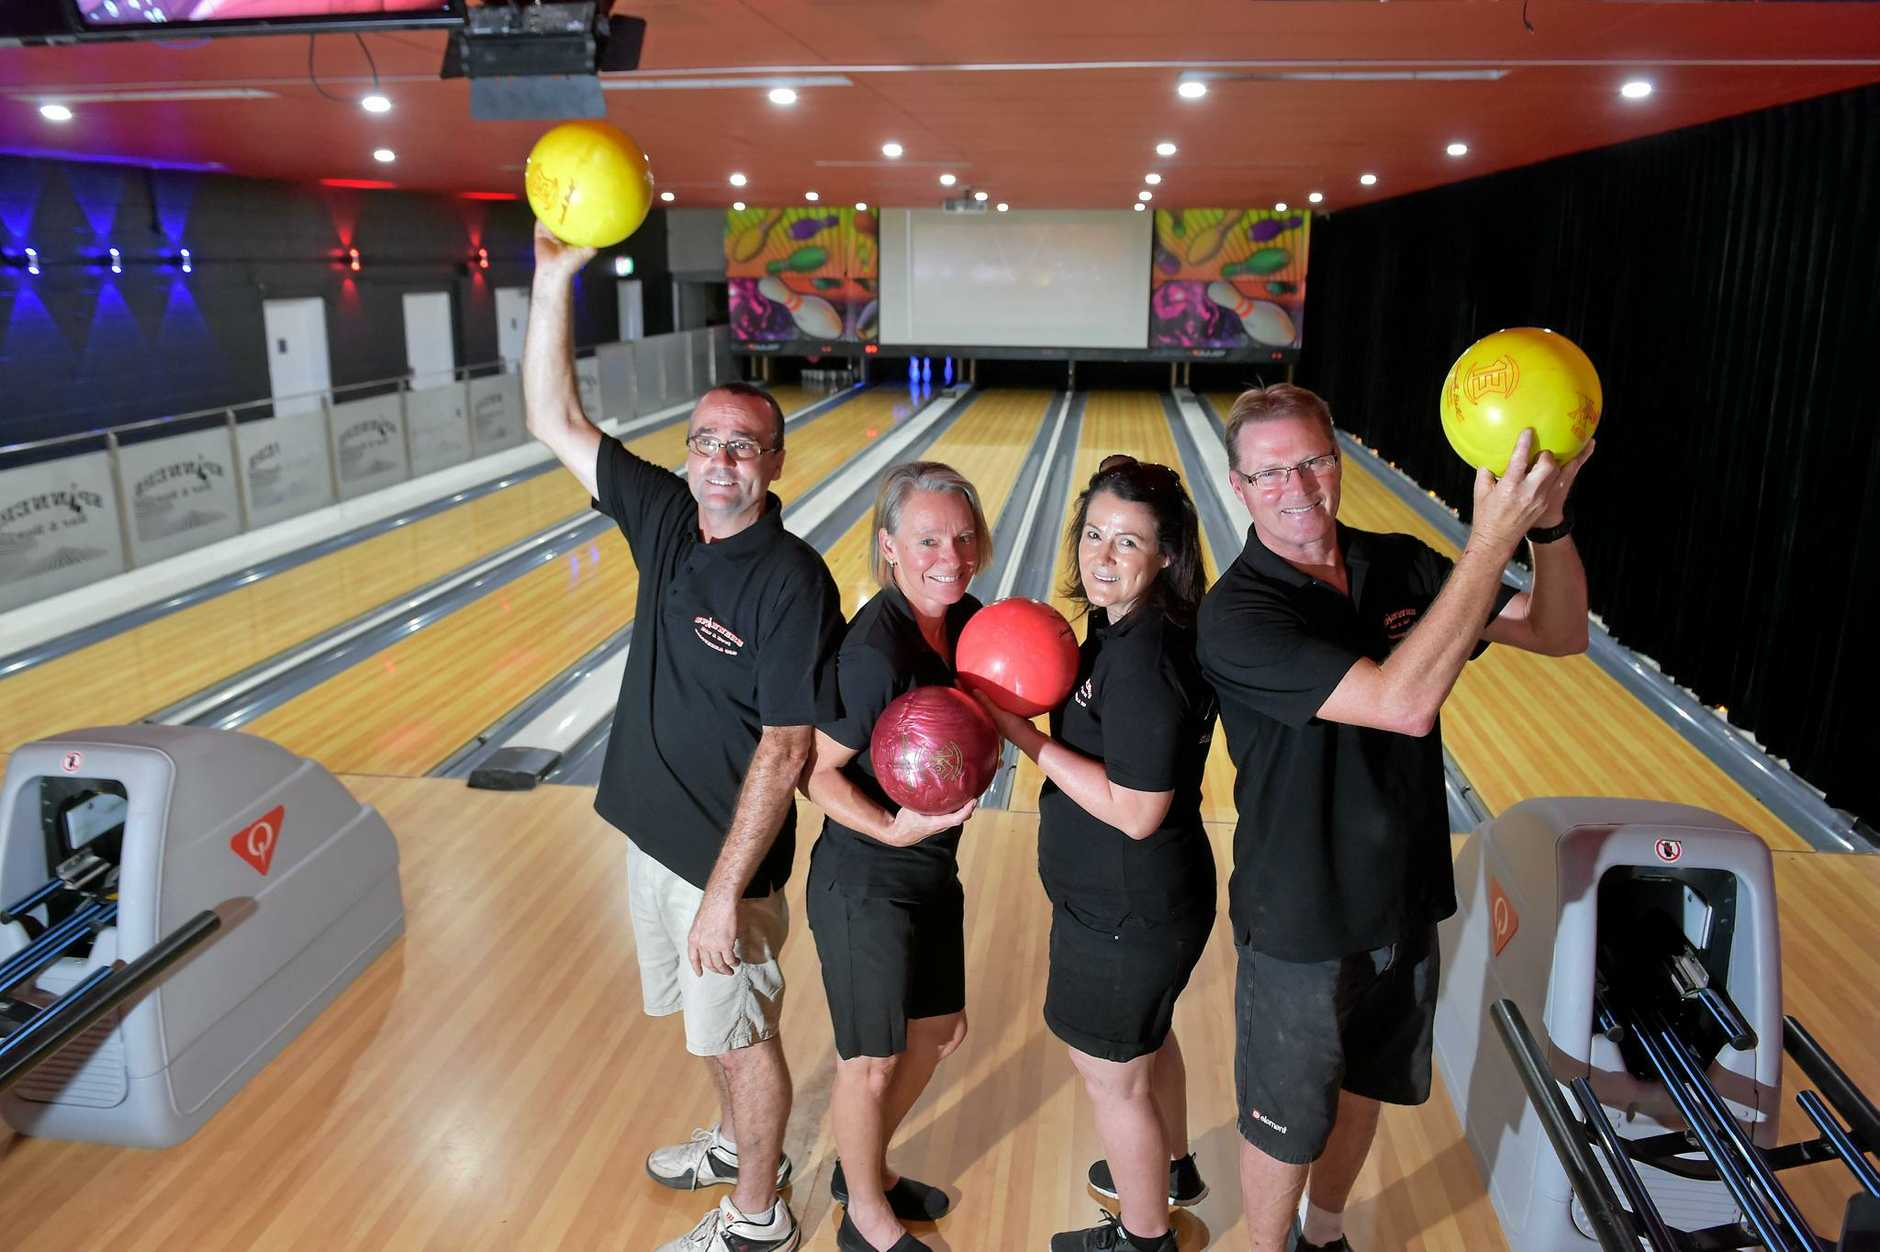 The Spinners Bar and Bowls has opened in Caloundra.Owners David and Trish Mullins with Colleen and Fred Mineham ready for action.